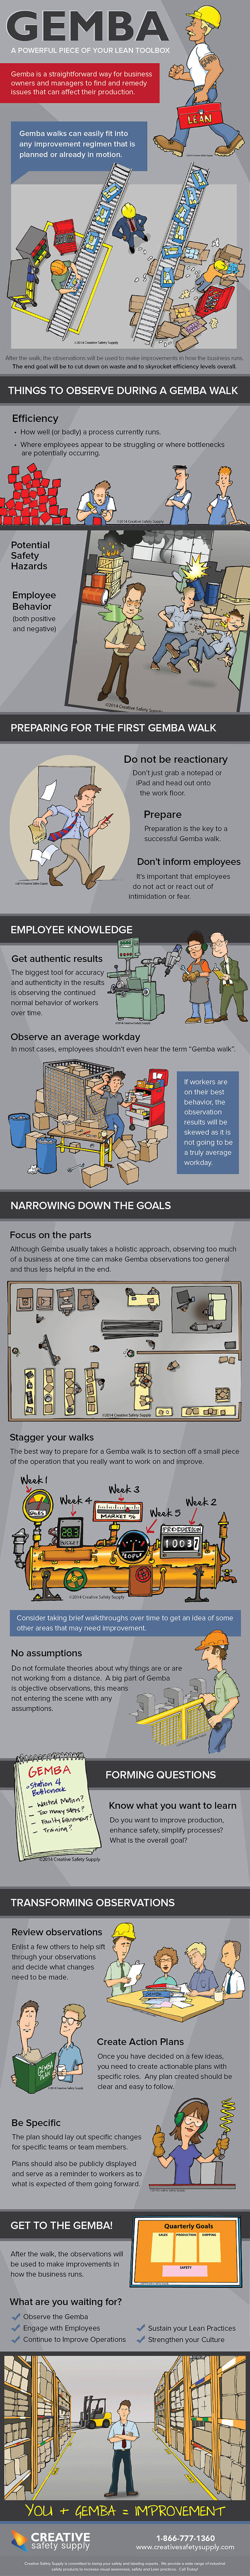 Gemba: A powerful piece of your lean toolbox - Infographic